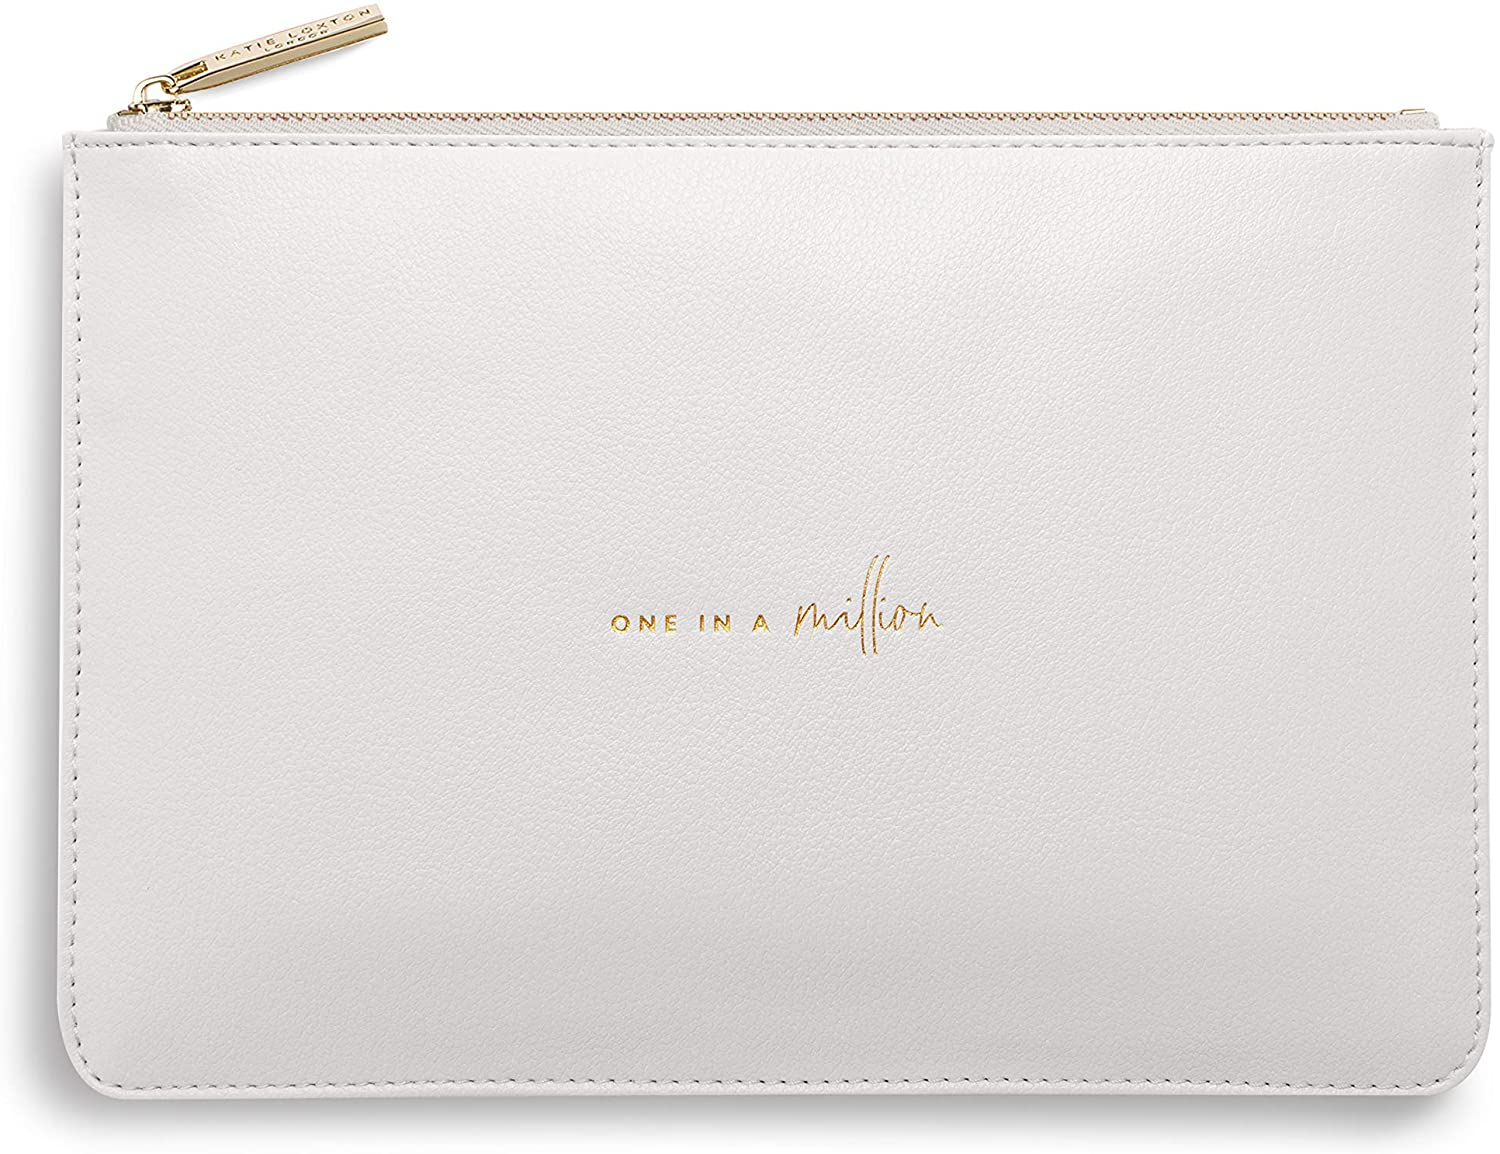 Katie Loxton One In A Million Women's Medium Vegan Leather Clutch Perfect Pouch Pale Grey